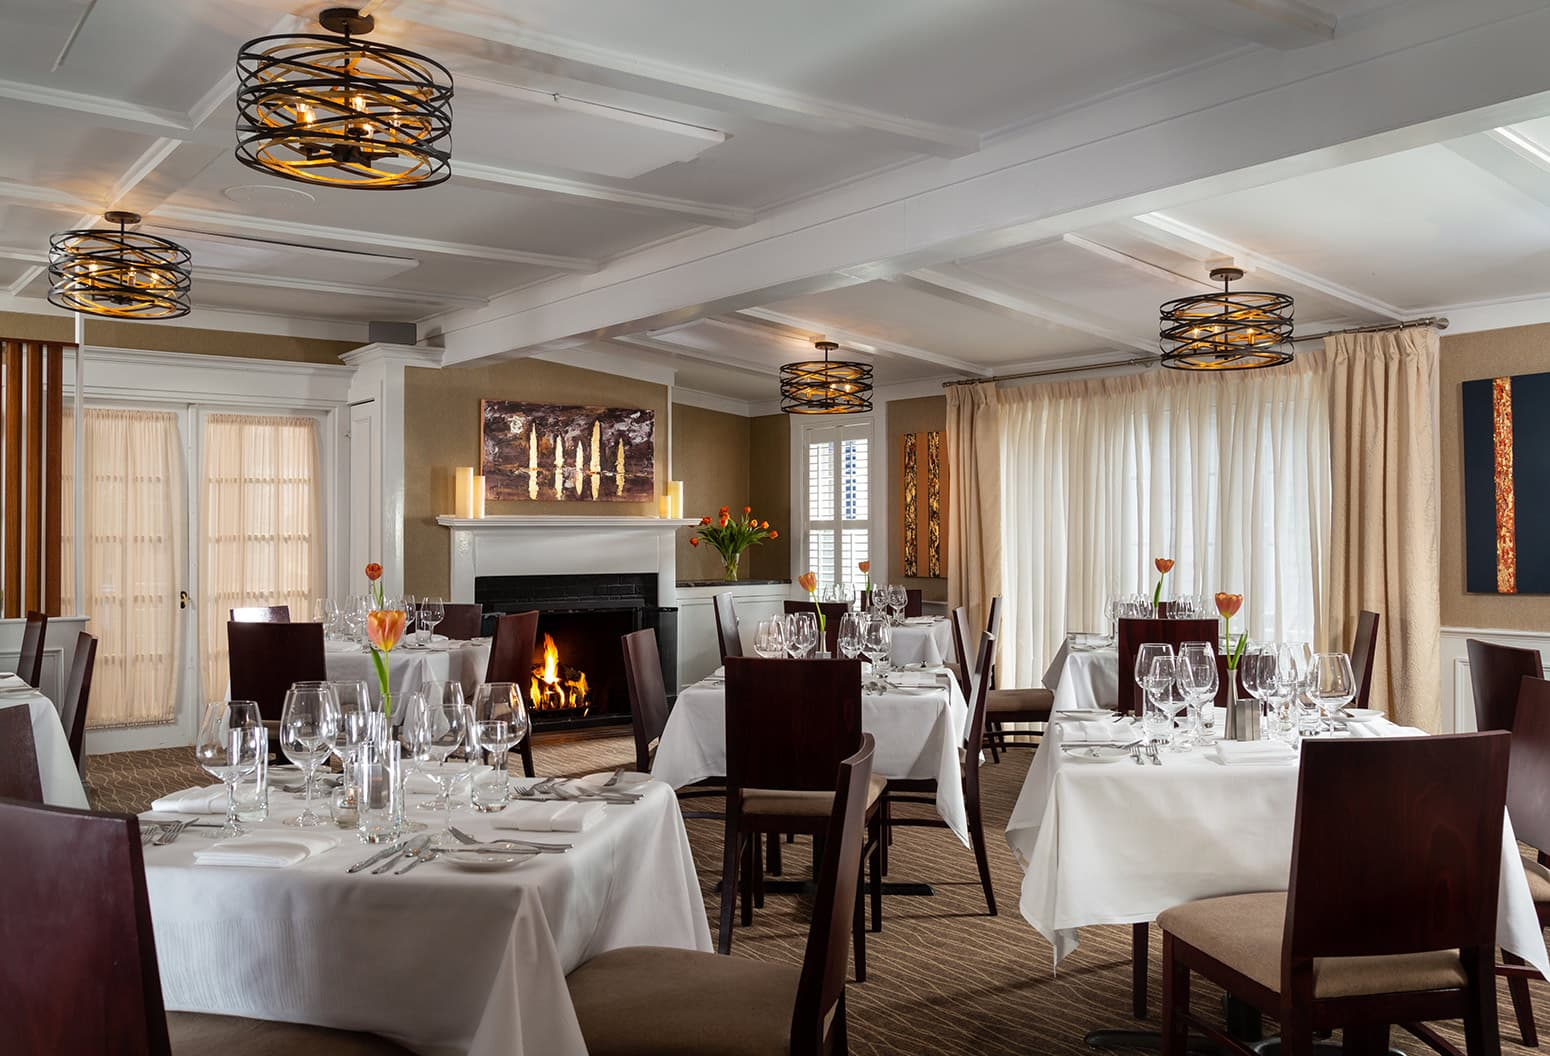 Fine dining at the Chatham Inn Restaurant